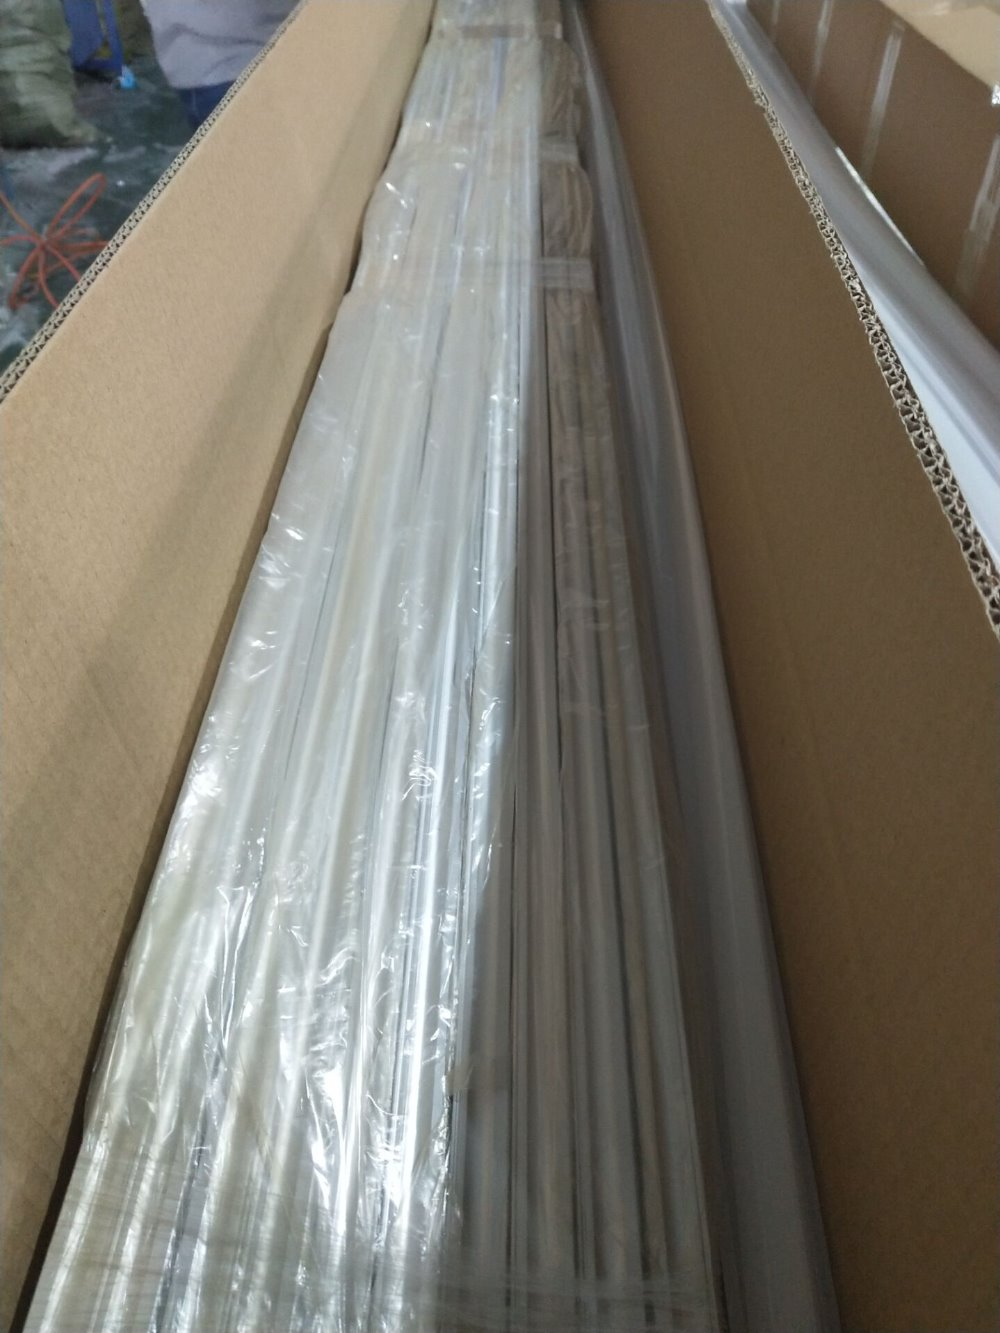 free Shipping HIGH QUALITY aluminum profile 2m pcs in LED Bar Lights from Lights Lighting